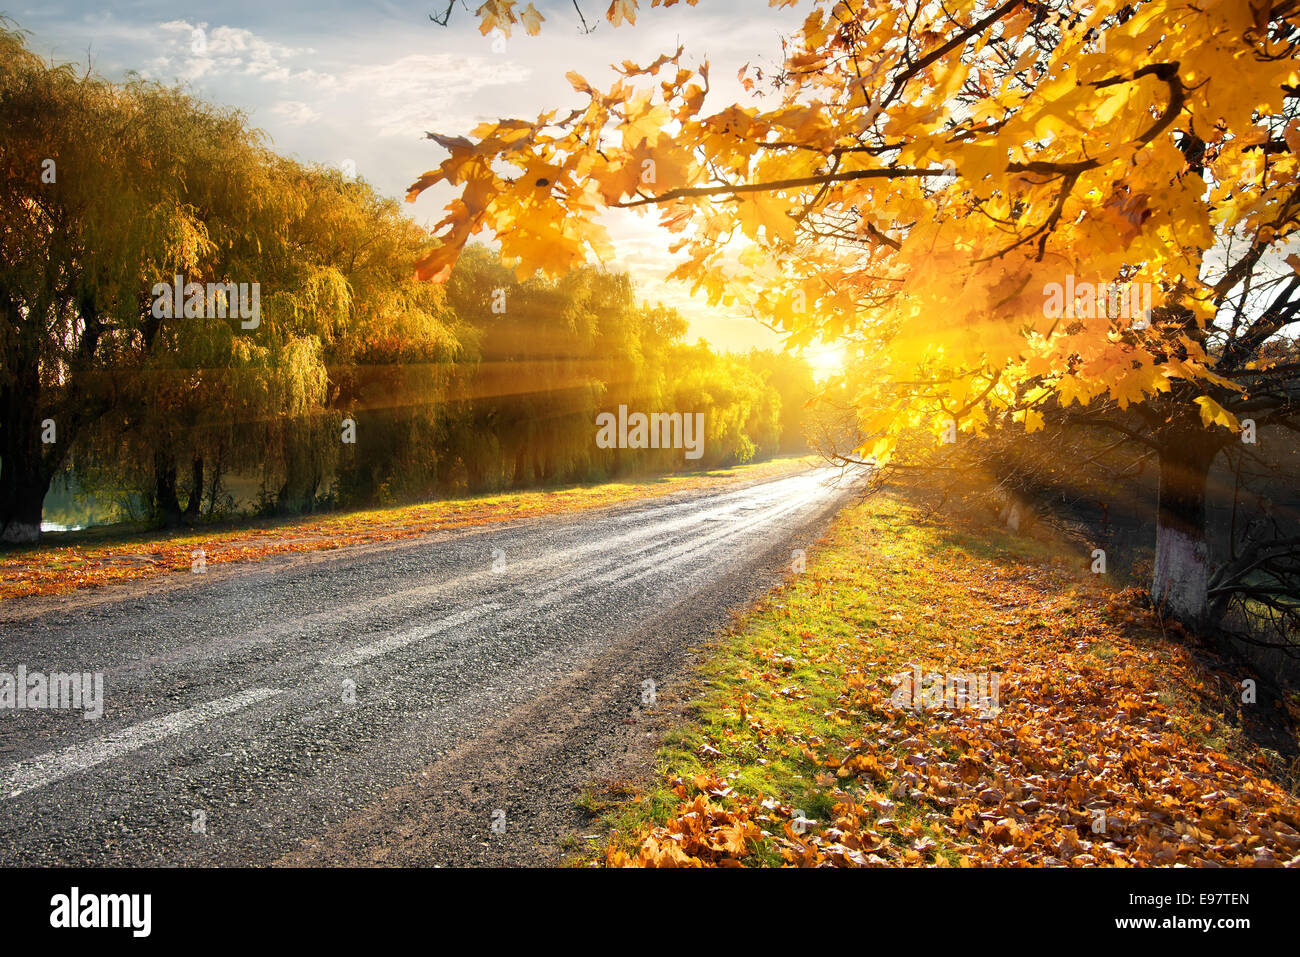 Highway through the autumn forest in sunbeams - Stock Image